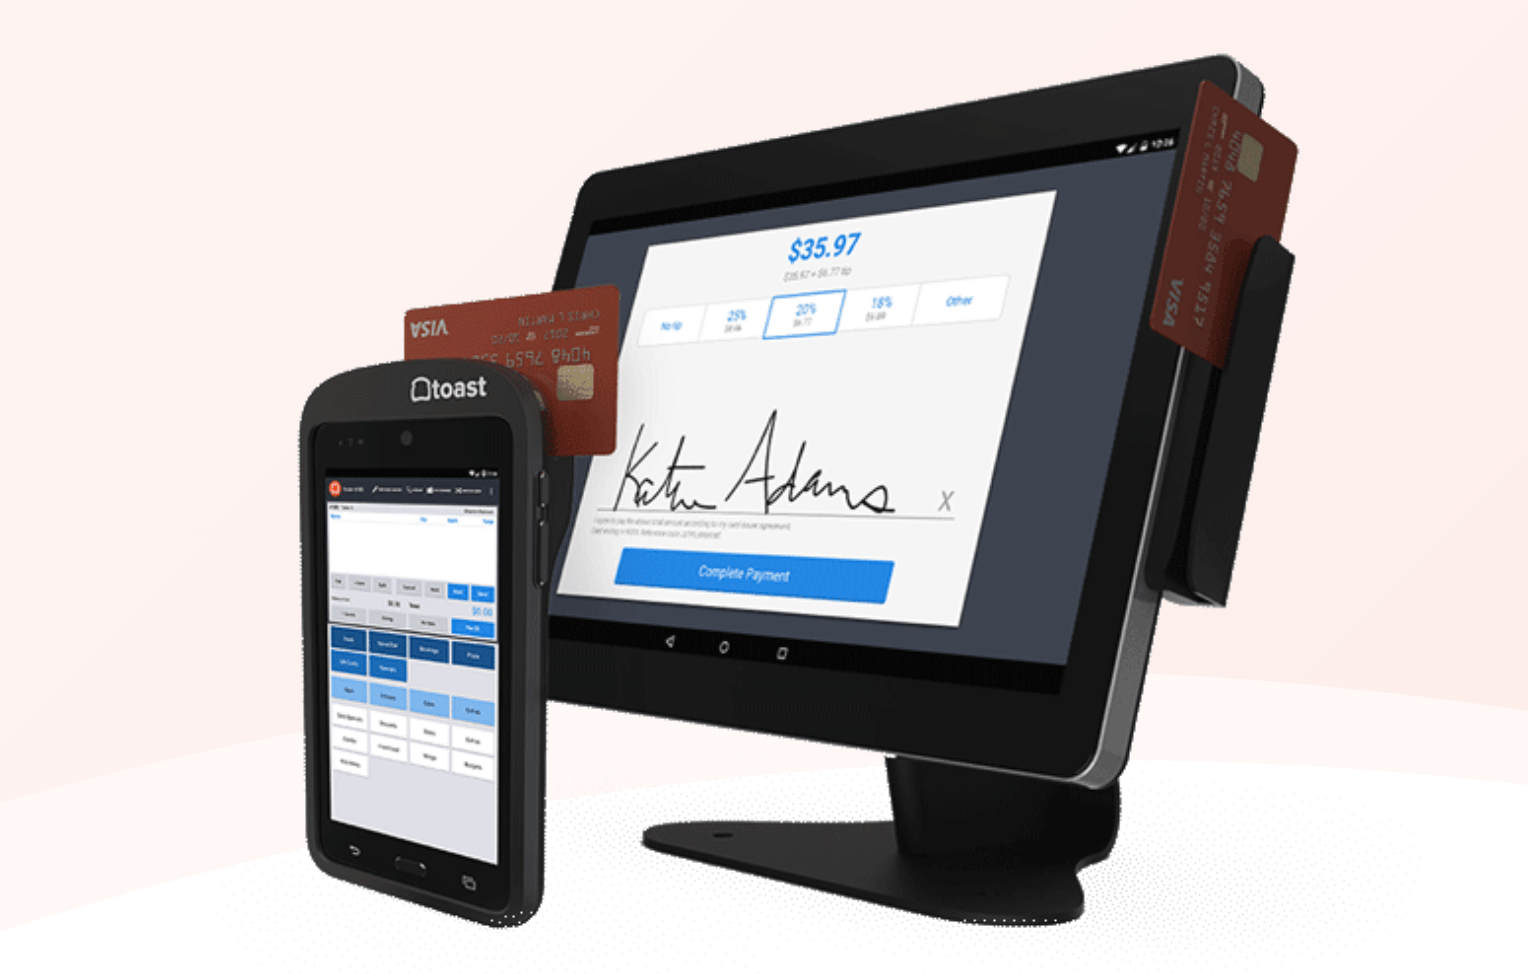 toast pos with handheld mobile device for tableside payments